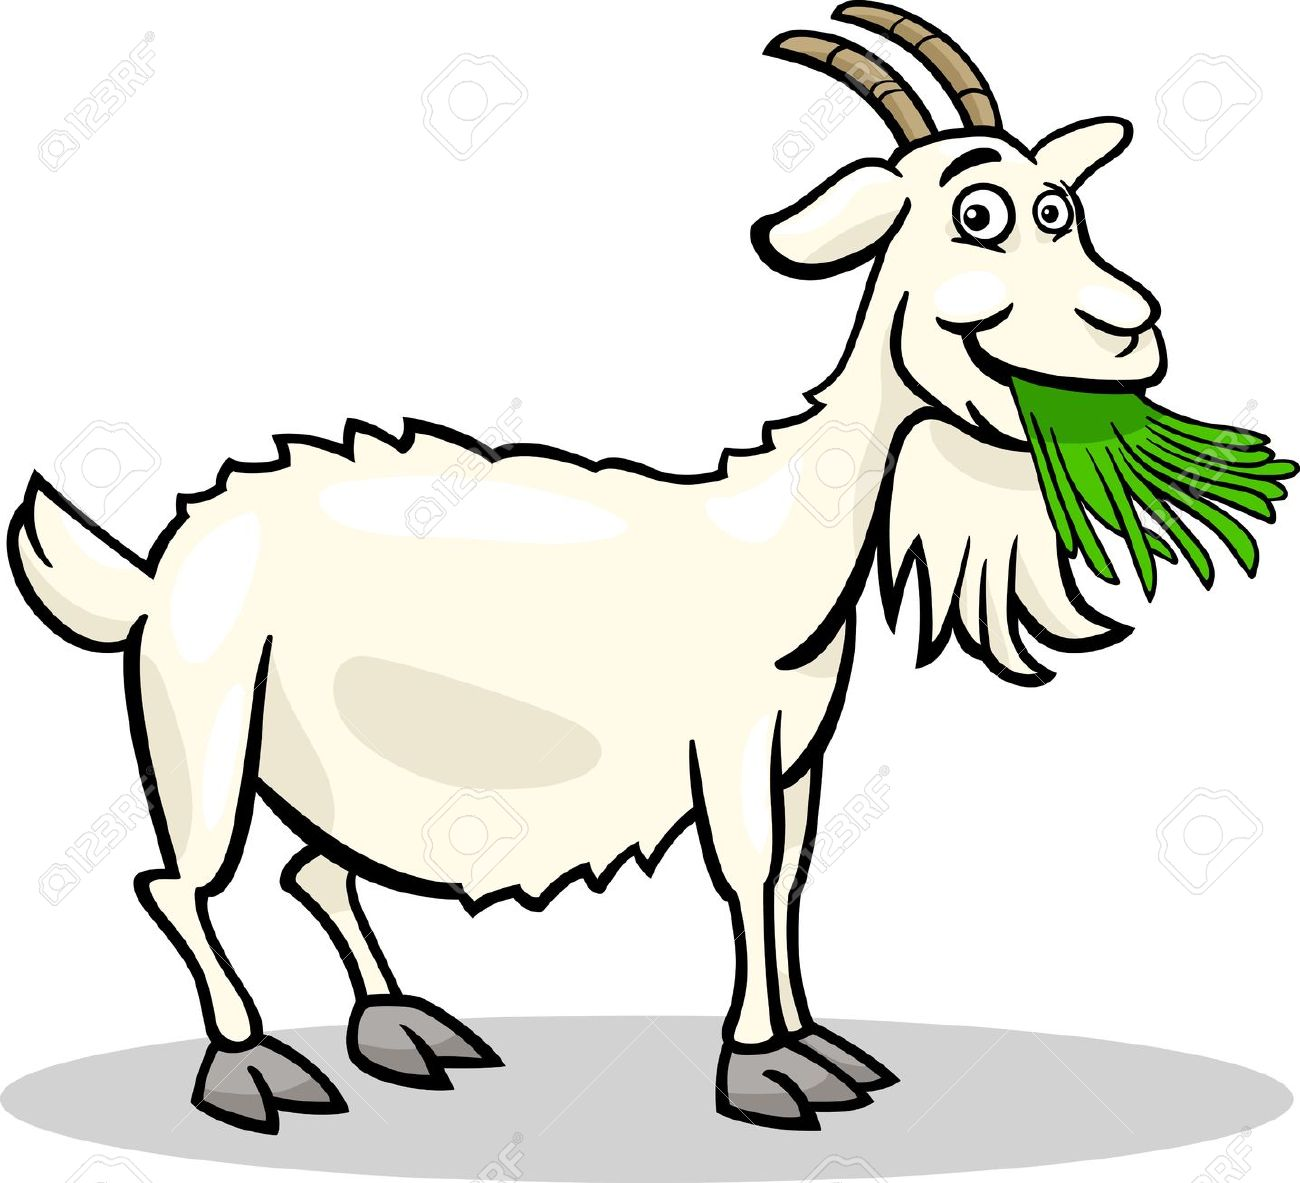 Goat Clipart | Free download on ClipArtMag